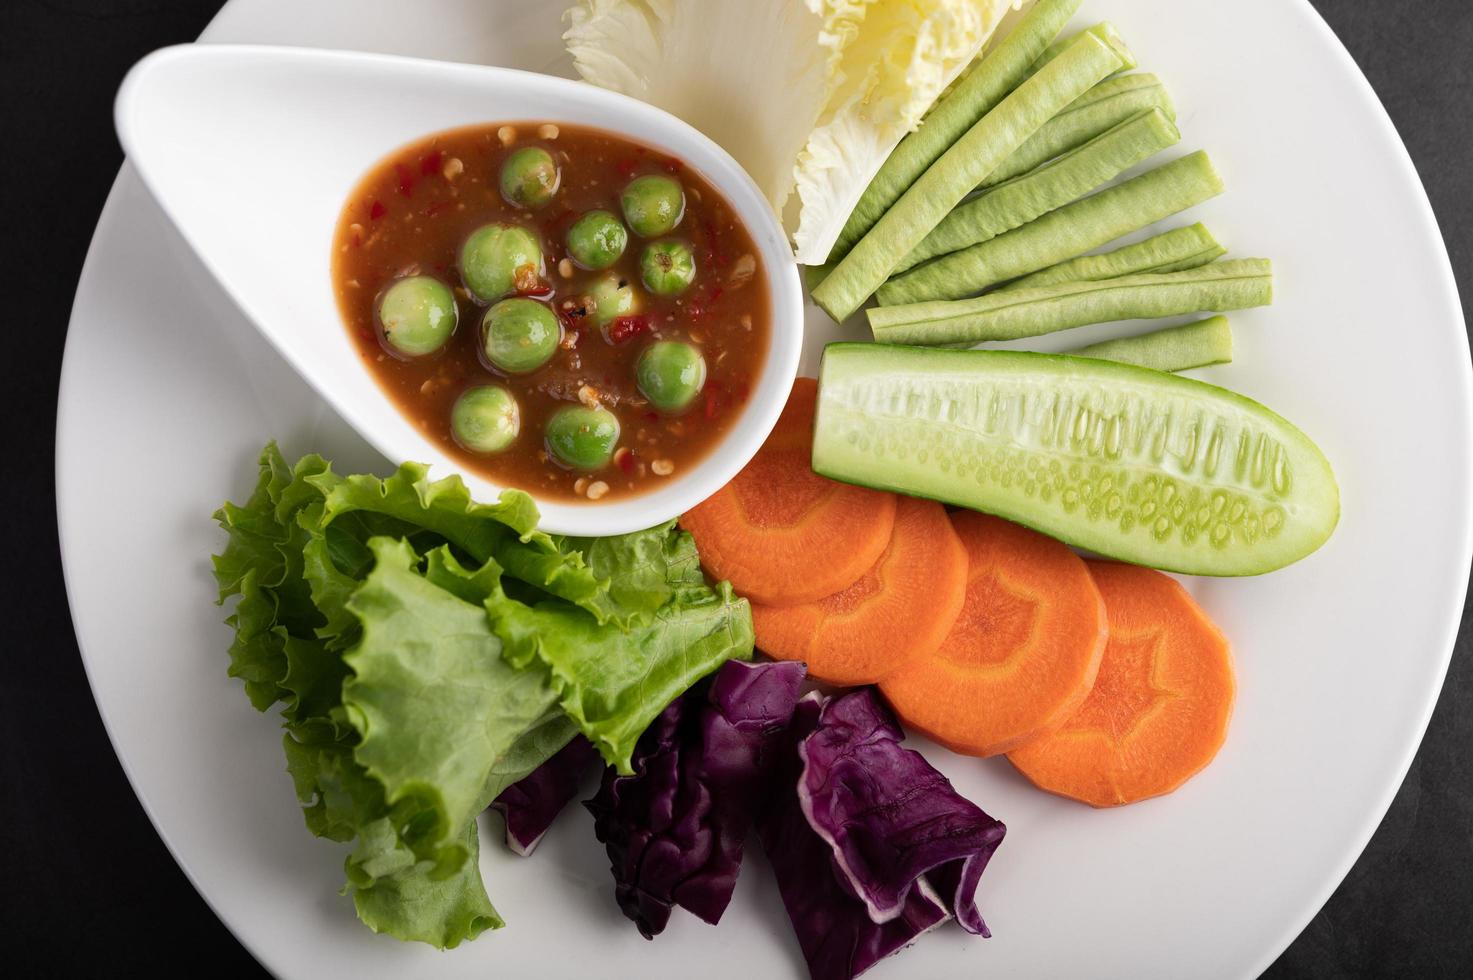 Sauce in a bowl with vegetables photo